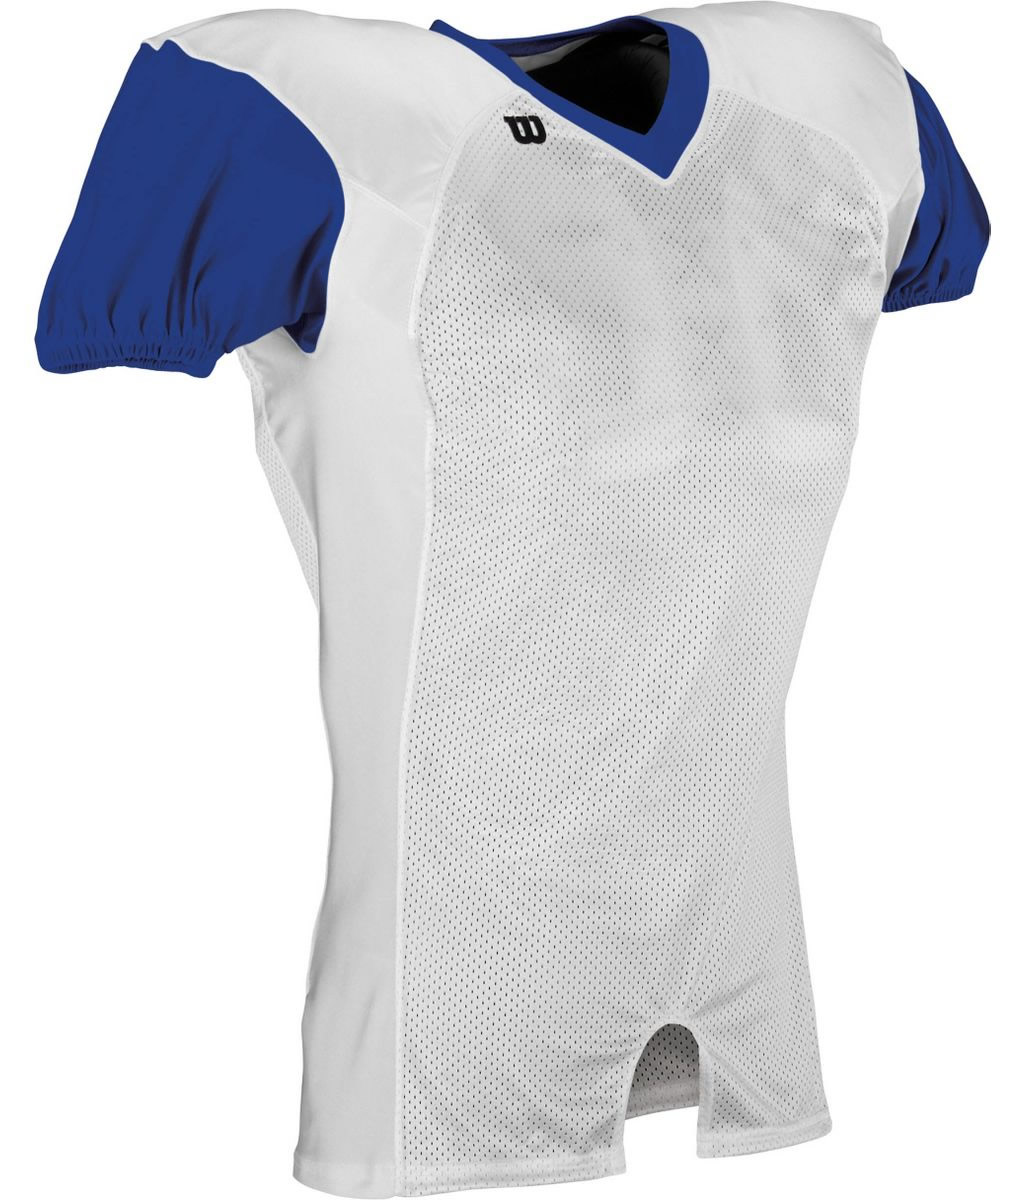 blue and white football jersey